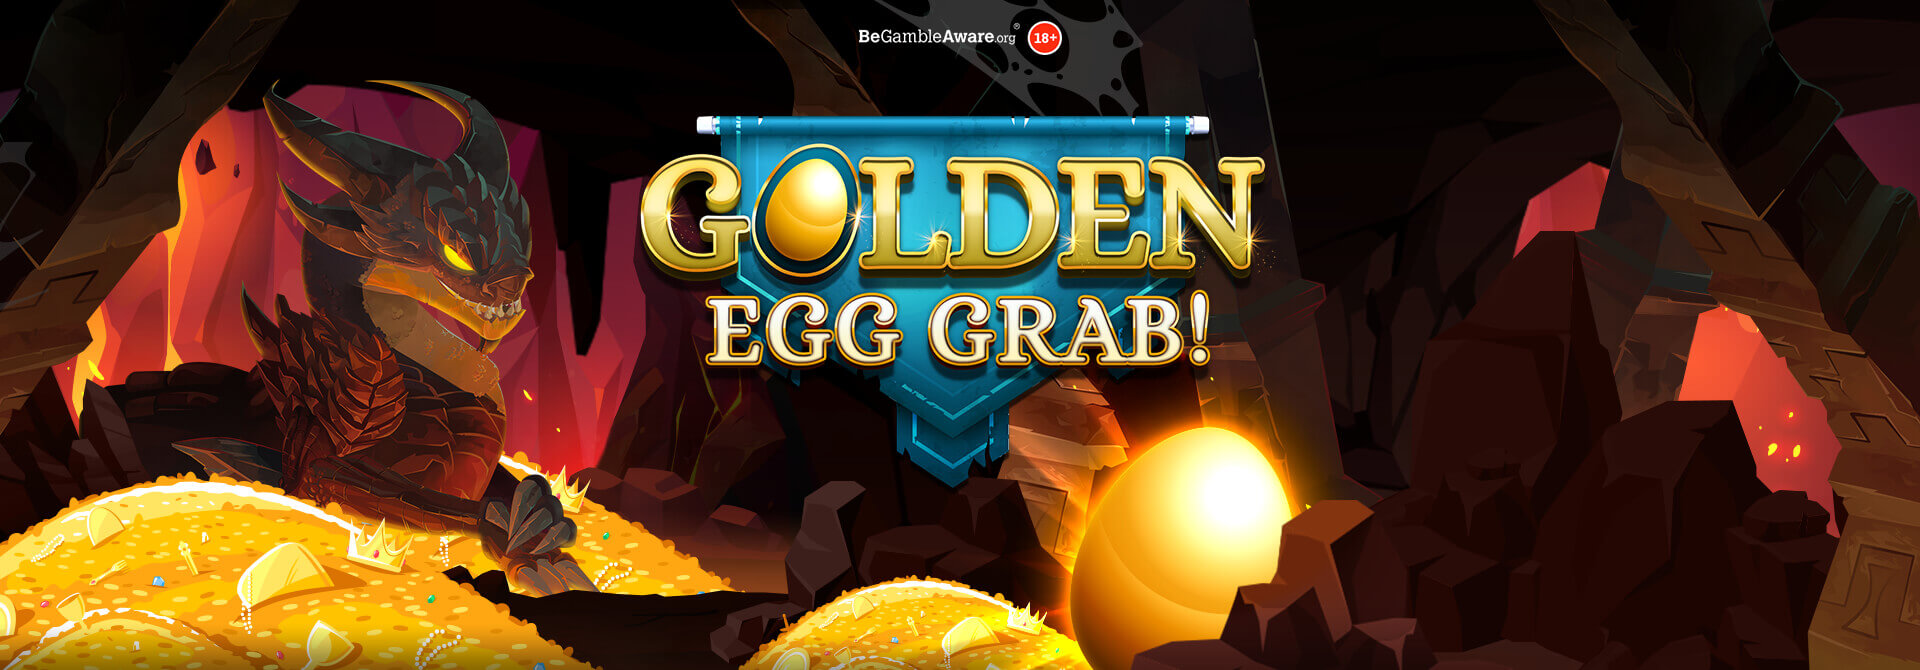 Do you dare to risk waking a sleeping dragon in Dr Slot's Golden EGG Grab?